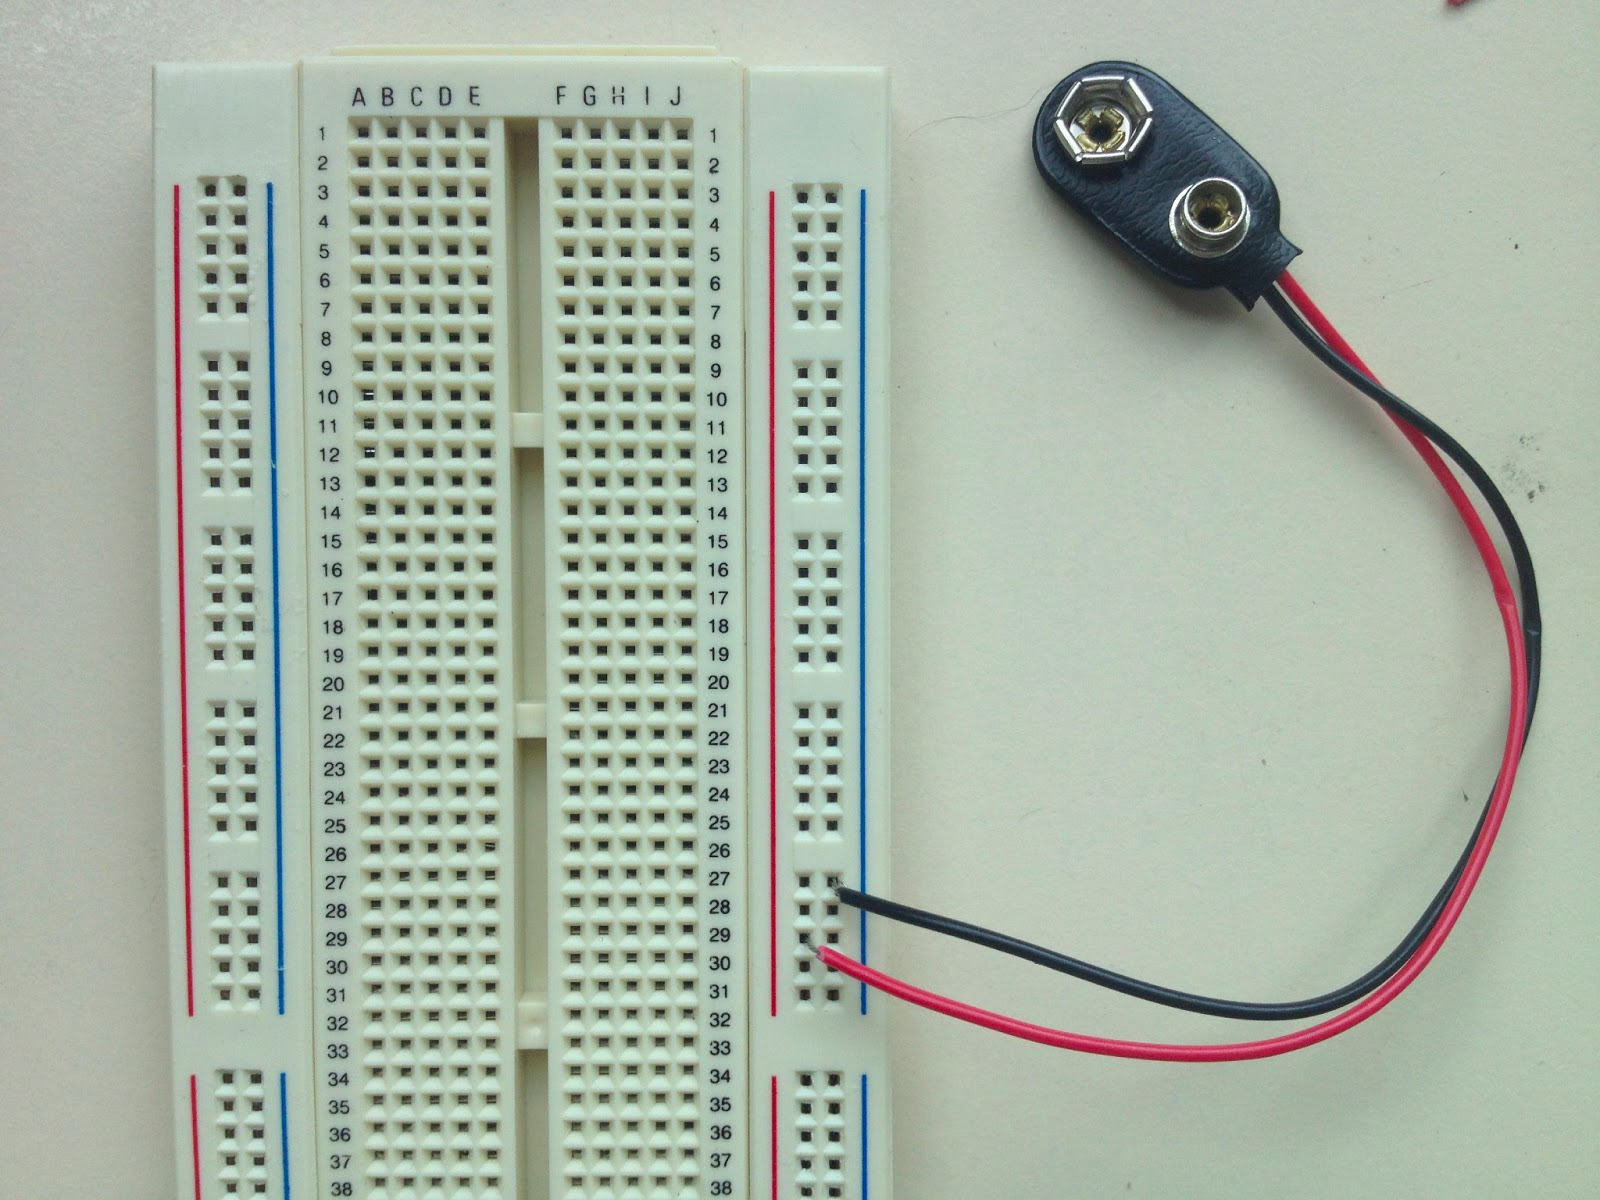 little-scale: Breadboard Basics 2: From Schematic to Breadboard ...